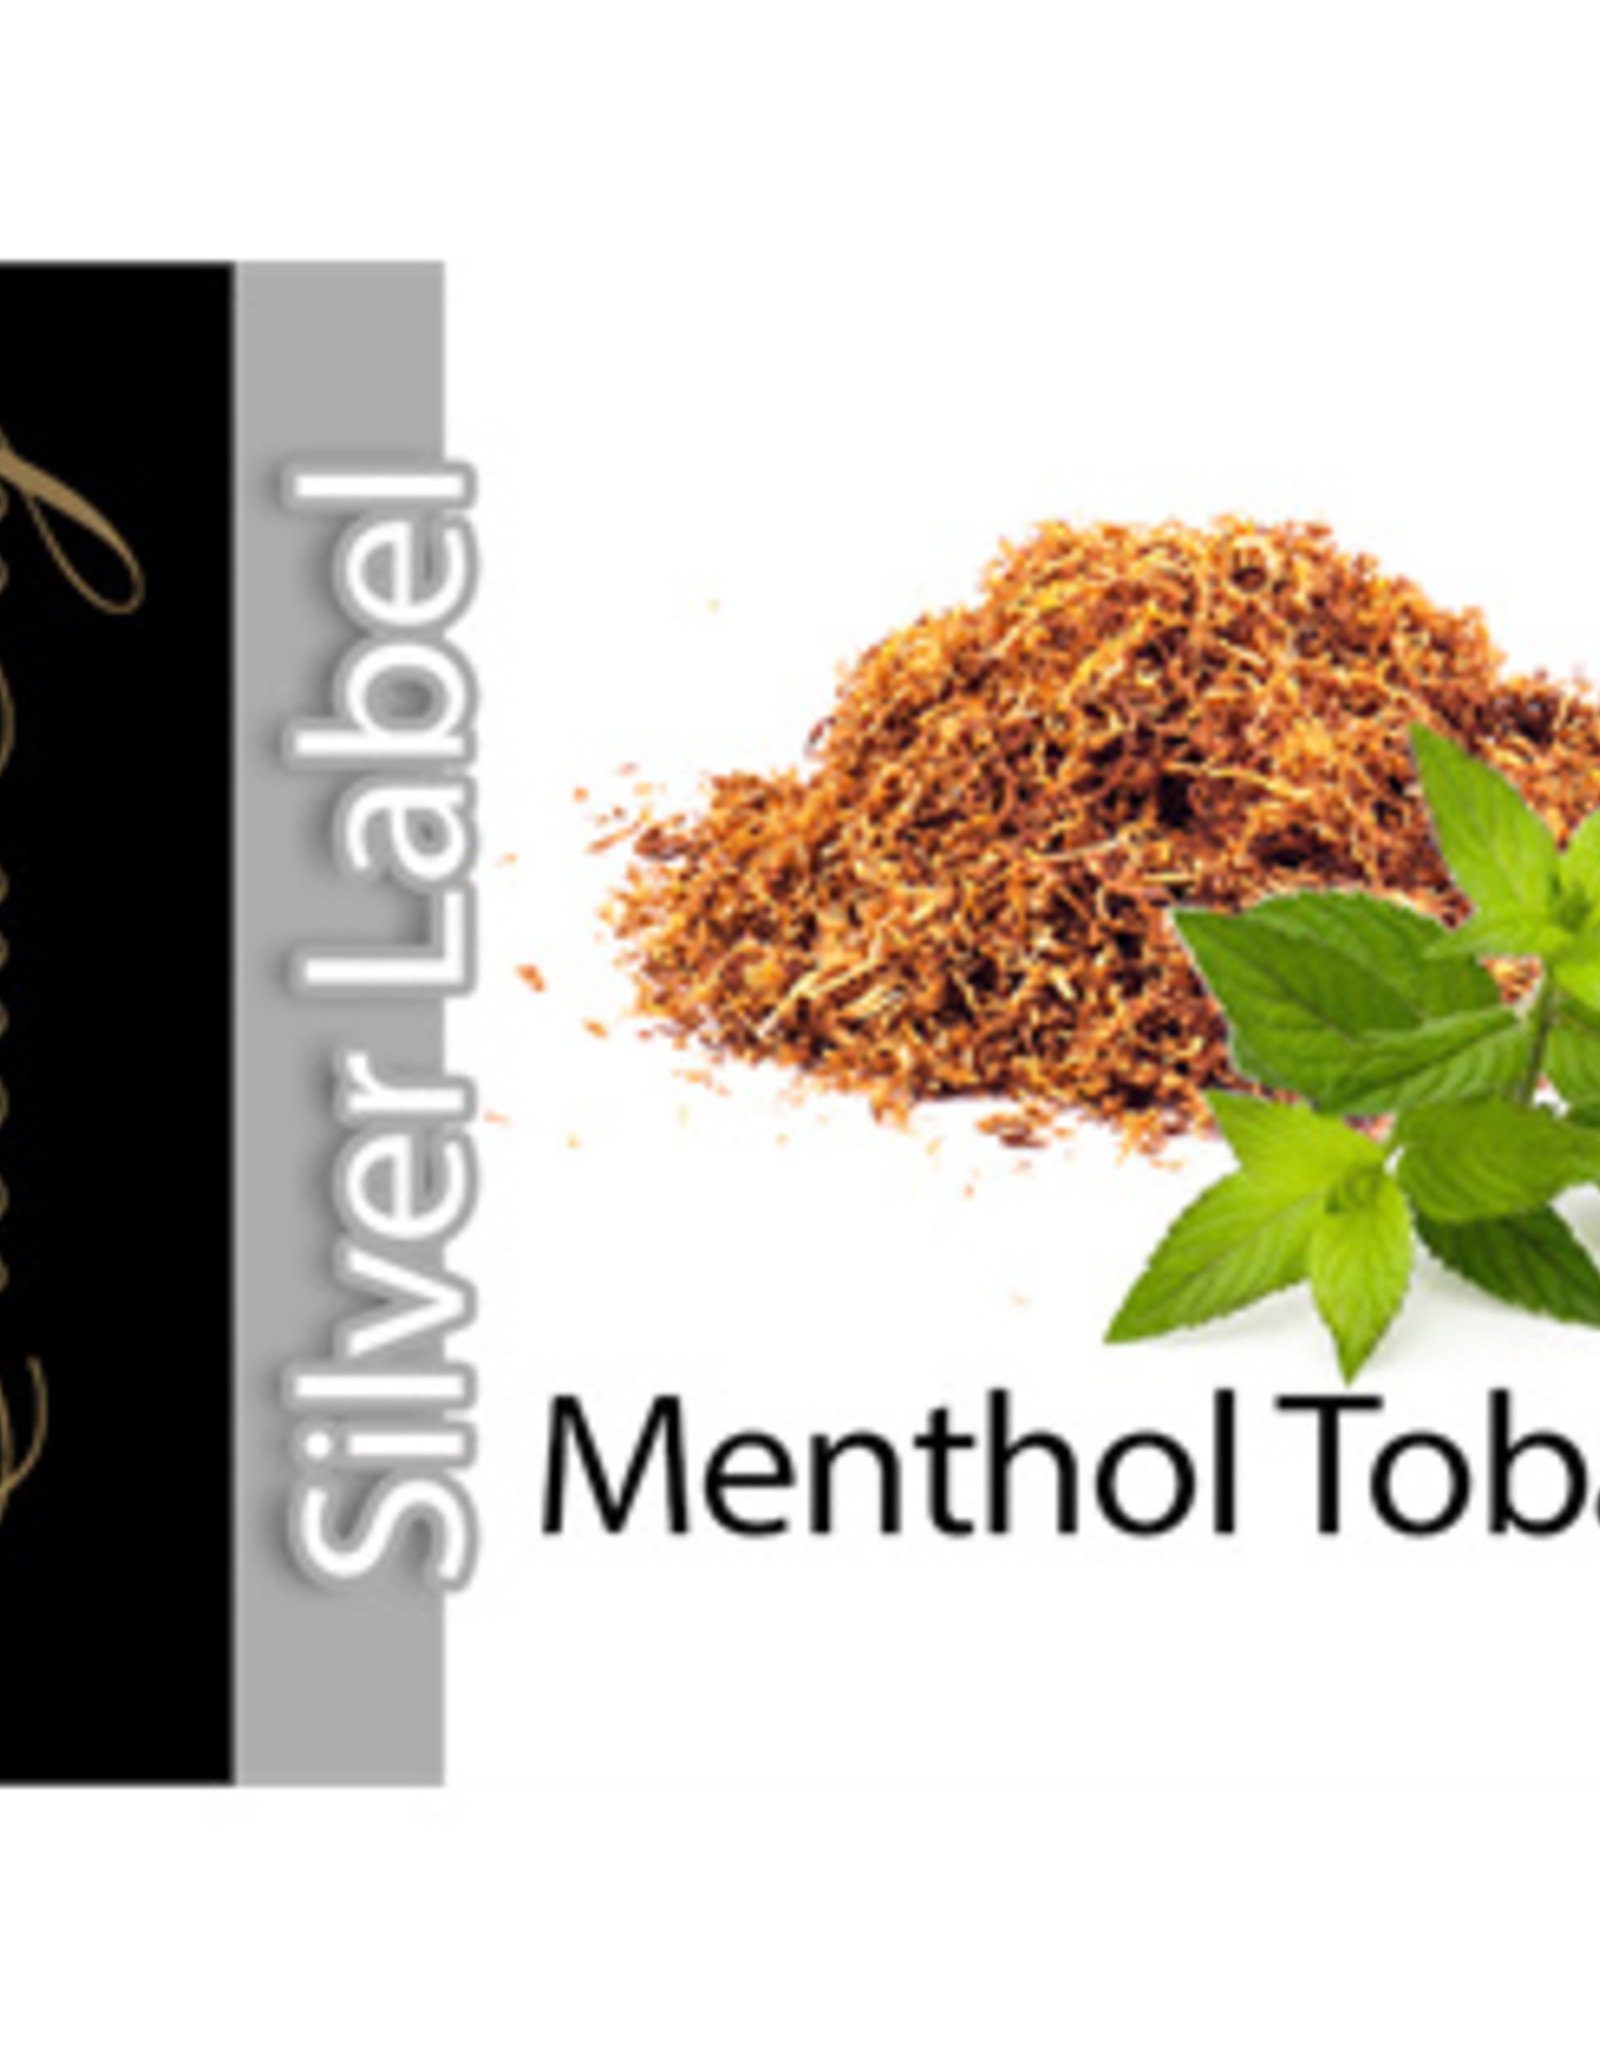 Exclucig Exclucig Silver Label E-liquid Menthol Tobacco 0 mg Nicotine